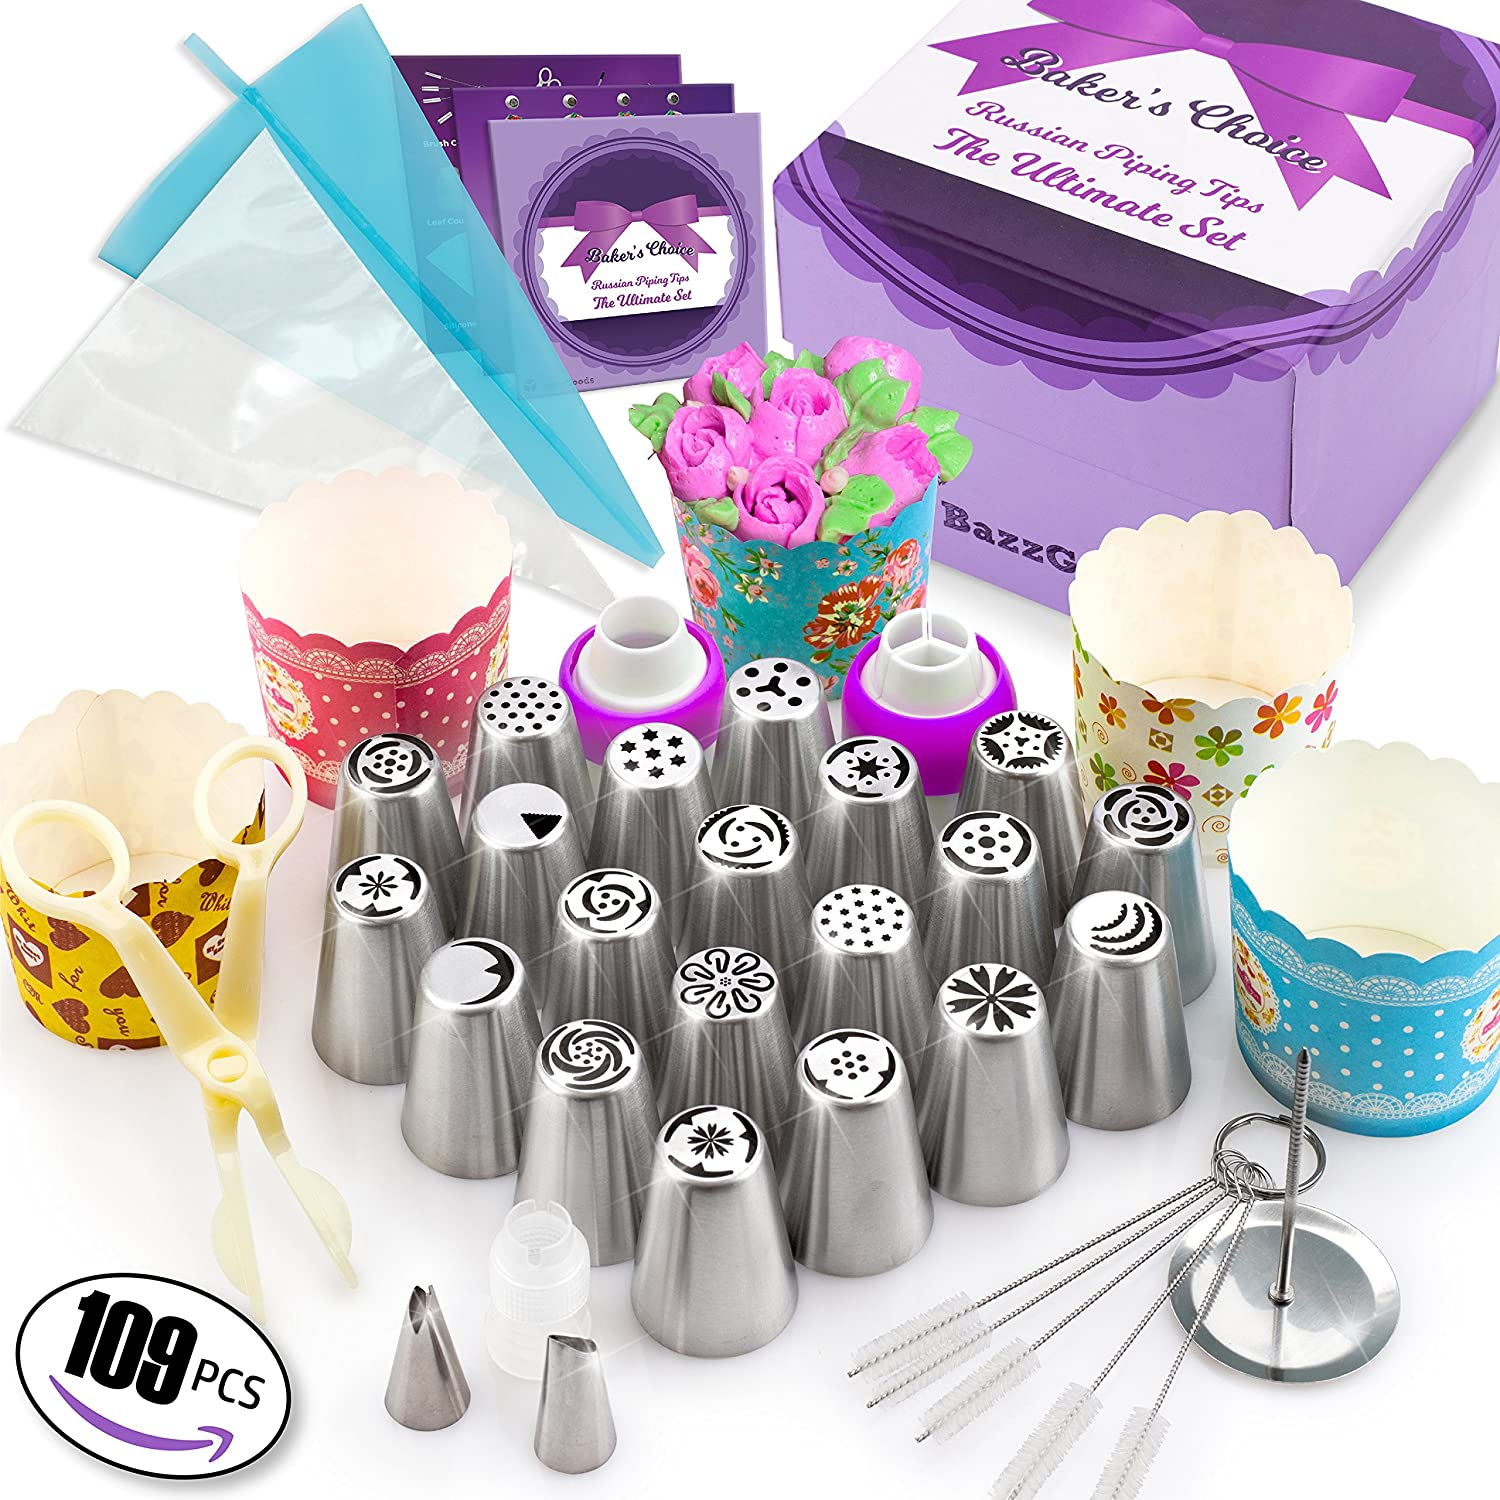 109 Pcs Russian Piping Tips Set - Cake Decorating supplies Gift Box With 109 Baking Supplies Set +22 Icing Nozzles+25 Cupcake Cups +50 Frosting Pastry Bags +5 Brushes+3 Couplers +User Guide & Rose Kit Bazz Goods